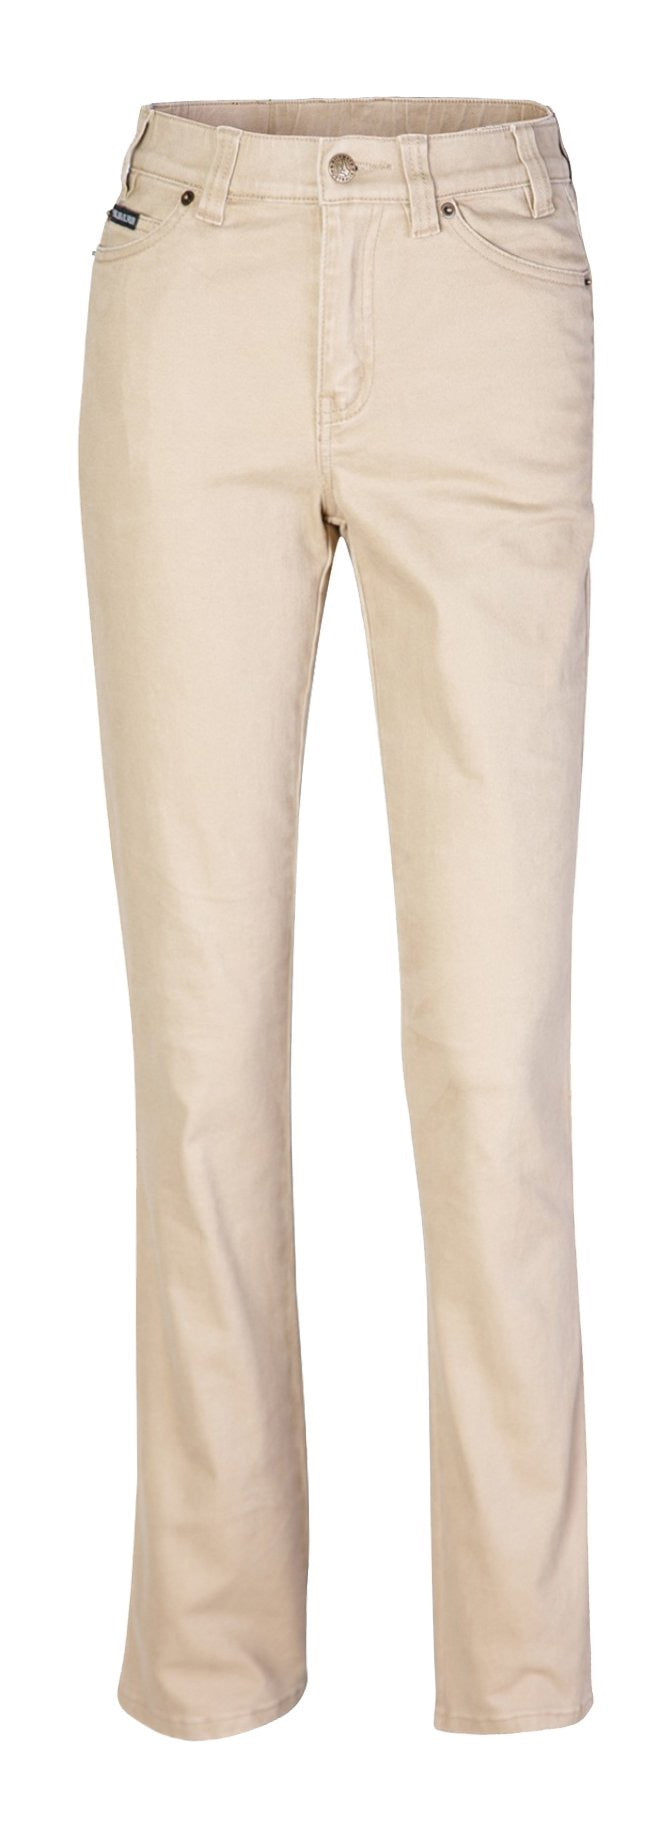 Ritemate Ladies Cotton Stretch Jean (4498146427017)